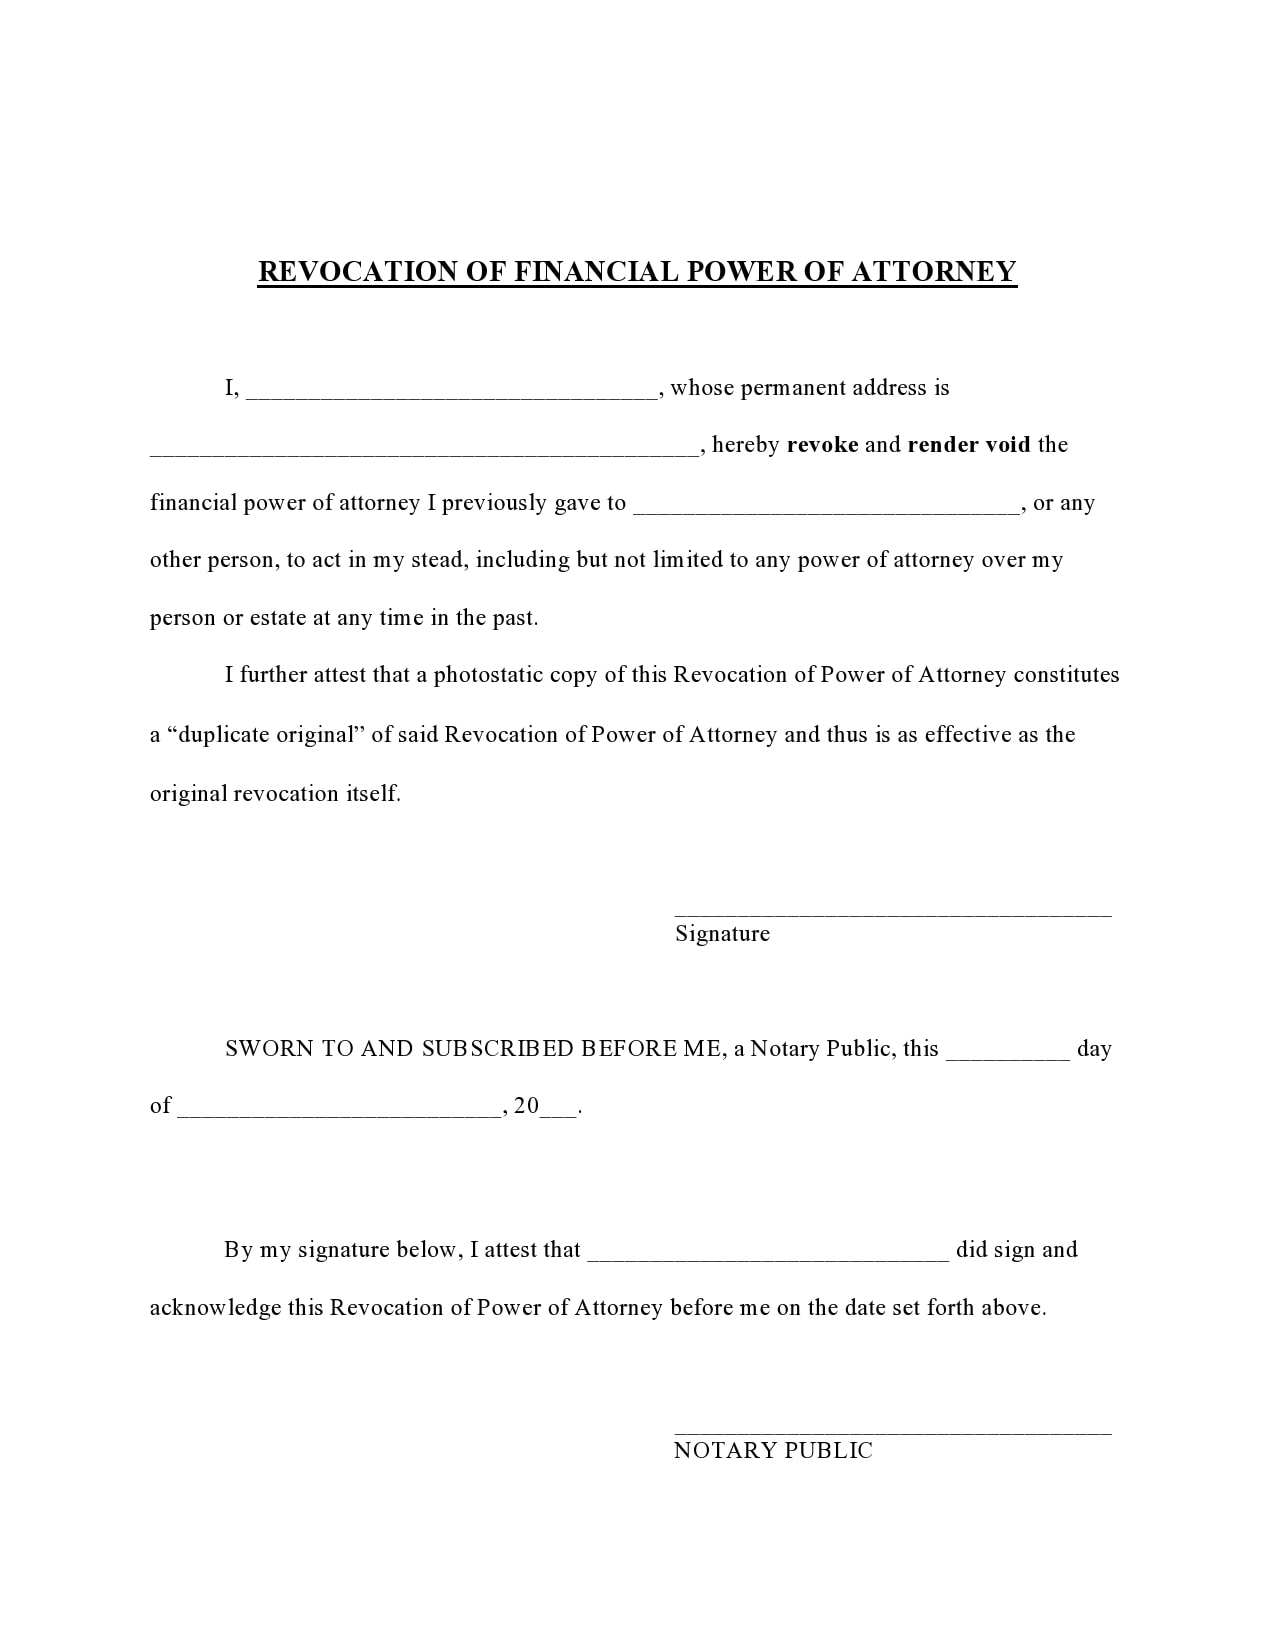 power of attorney revocation form 13